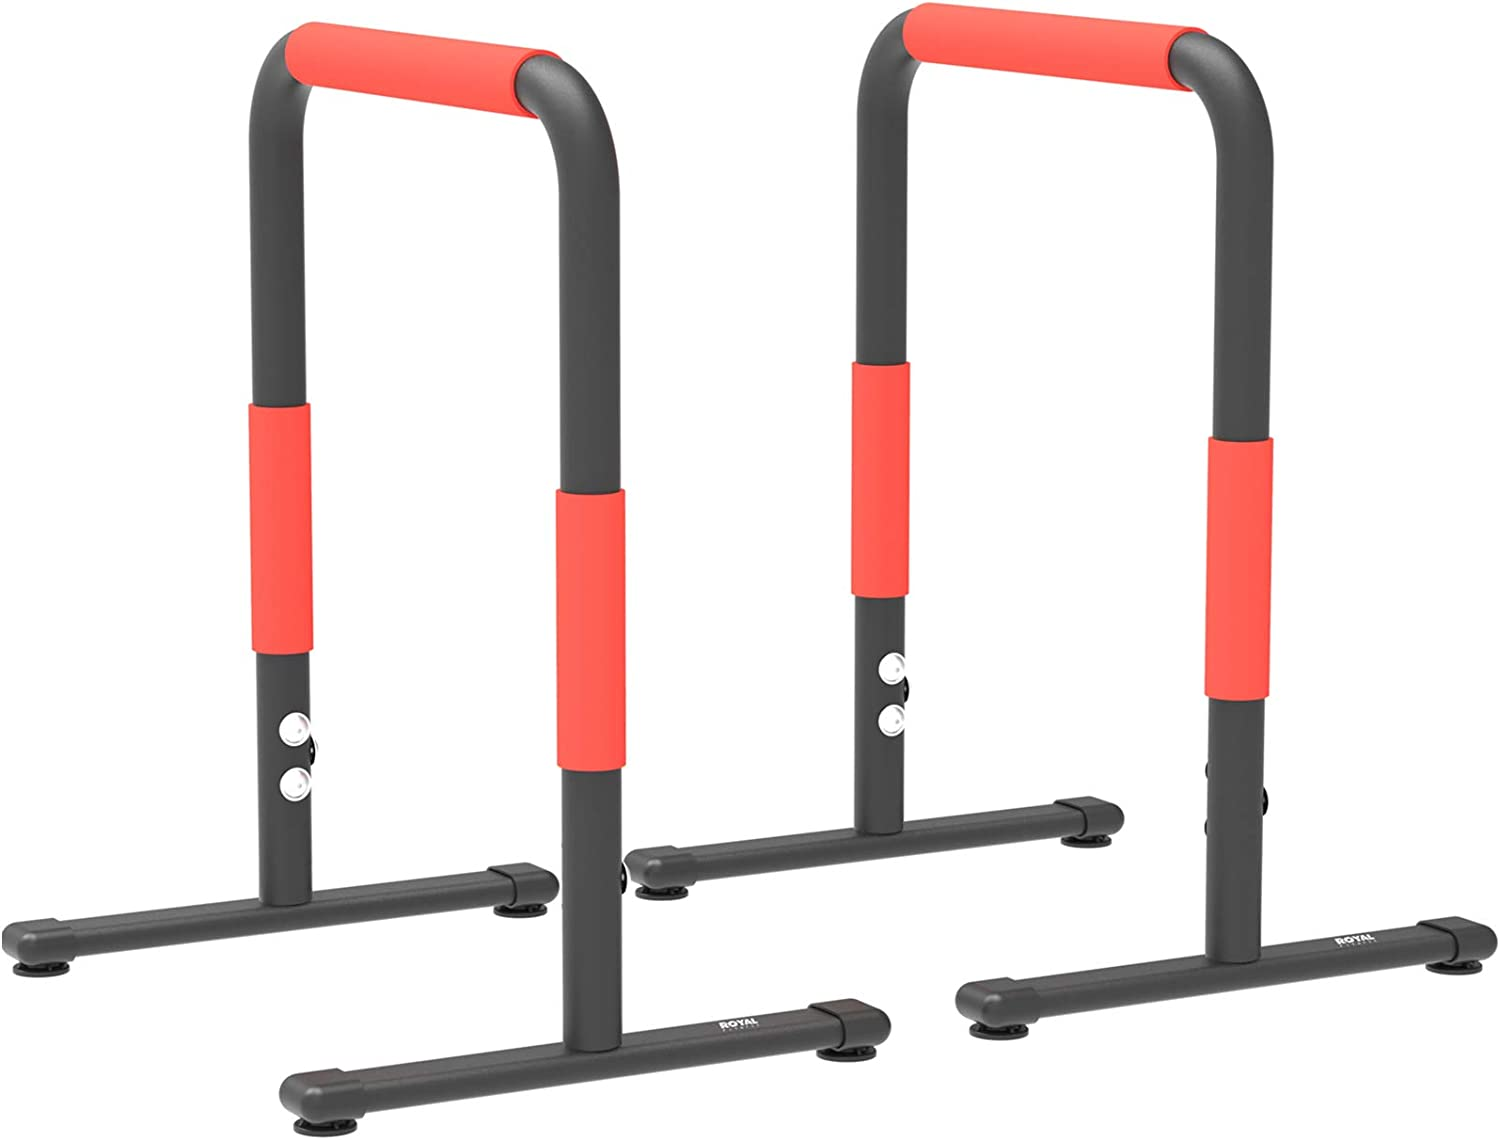 Royal Fitness Dip Bar Station Portable Heavy Duty Dip Station Home Gym Dip Stand Workout Calisthenics Equipment Parallel Bars Exercise Equalizer Bars Fitness